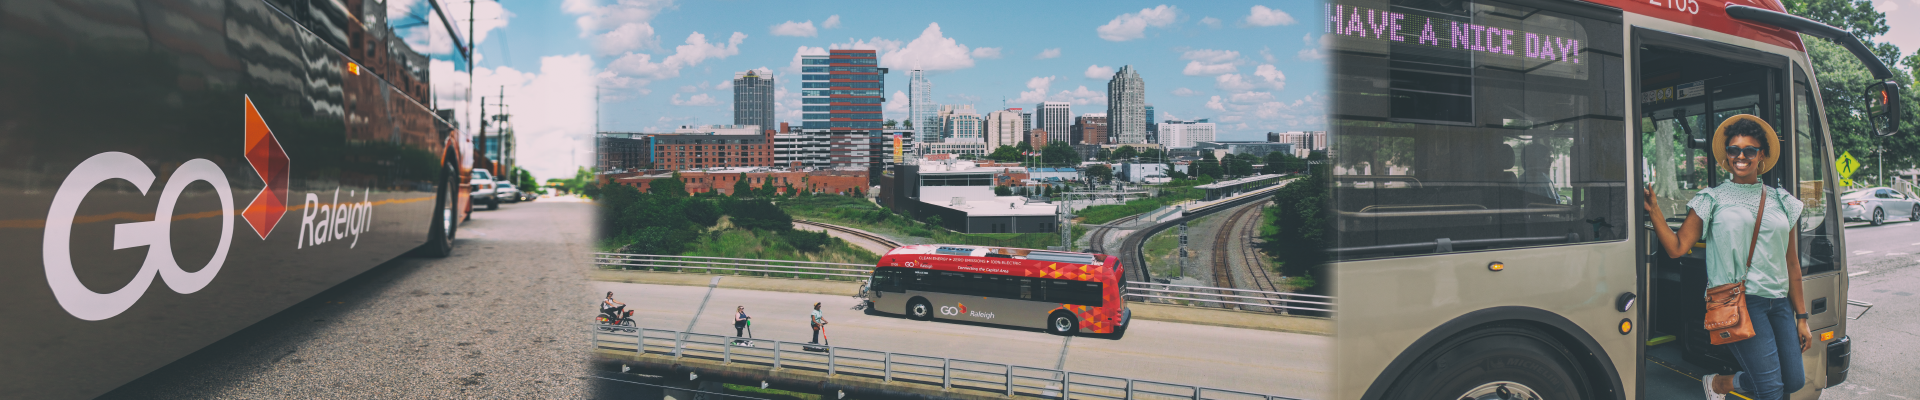 GoRaleigh Bus images